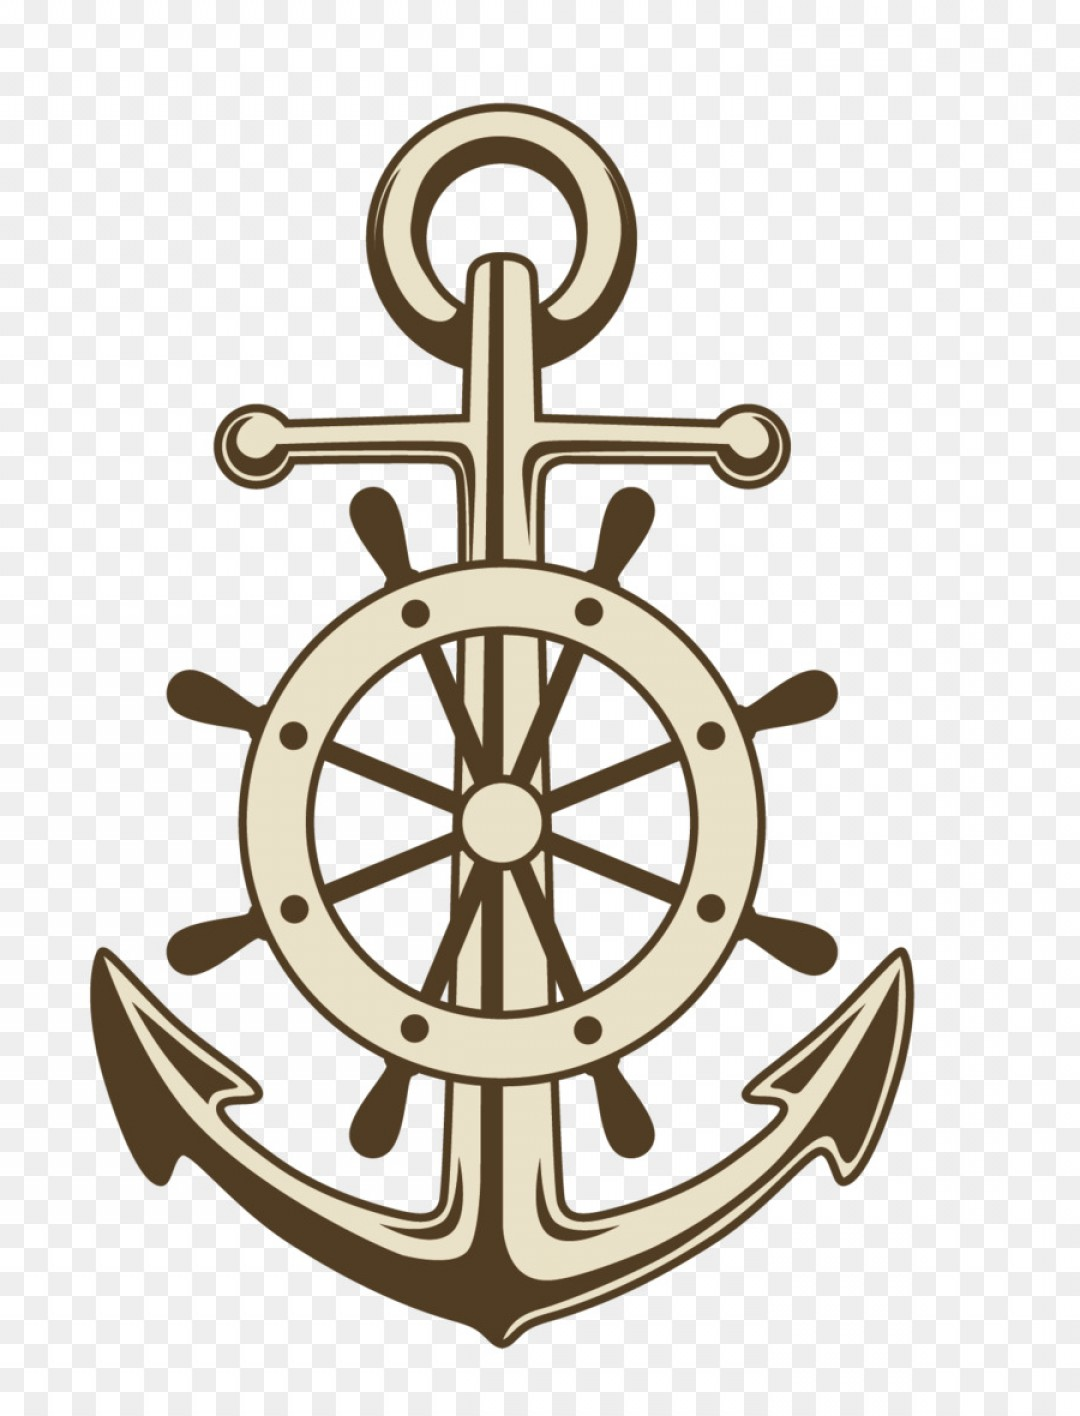 Captains wheel clipart image library download Png Anchor Ships Wheel Paper Clip Art Vector Painted A | SOIDERGI image library download